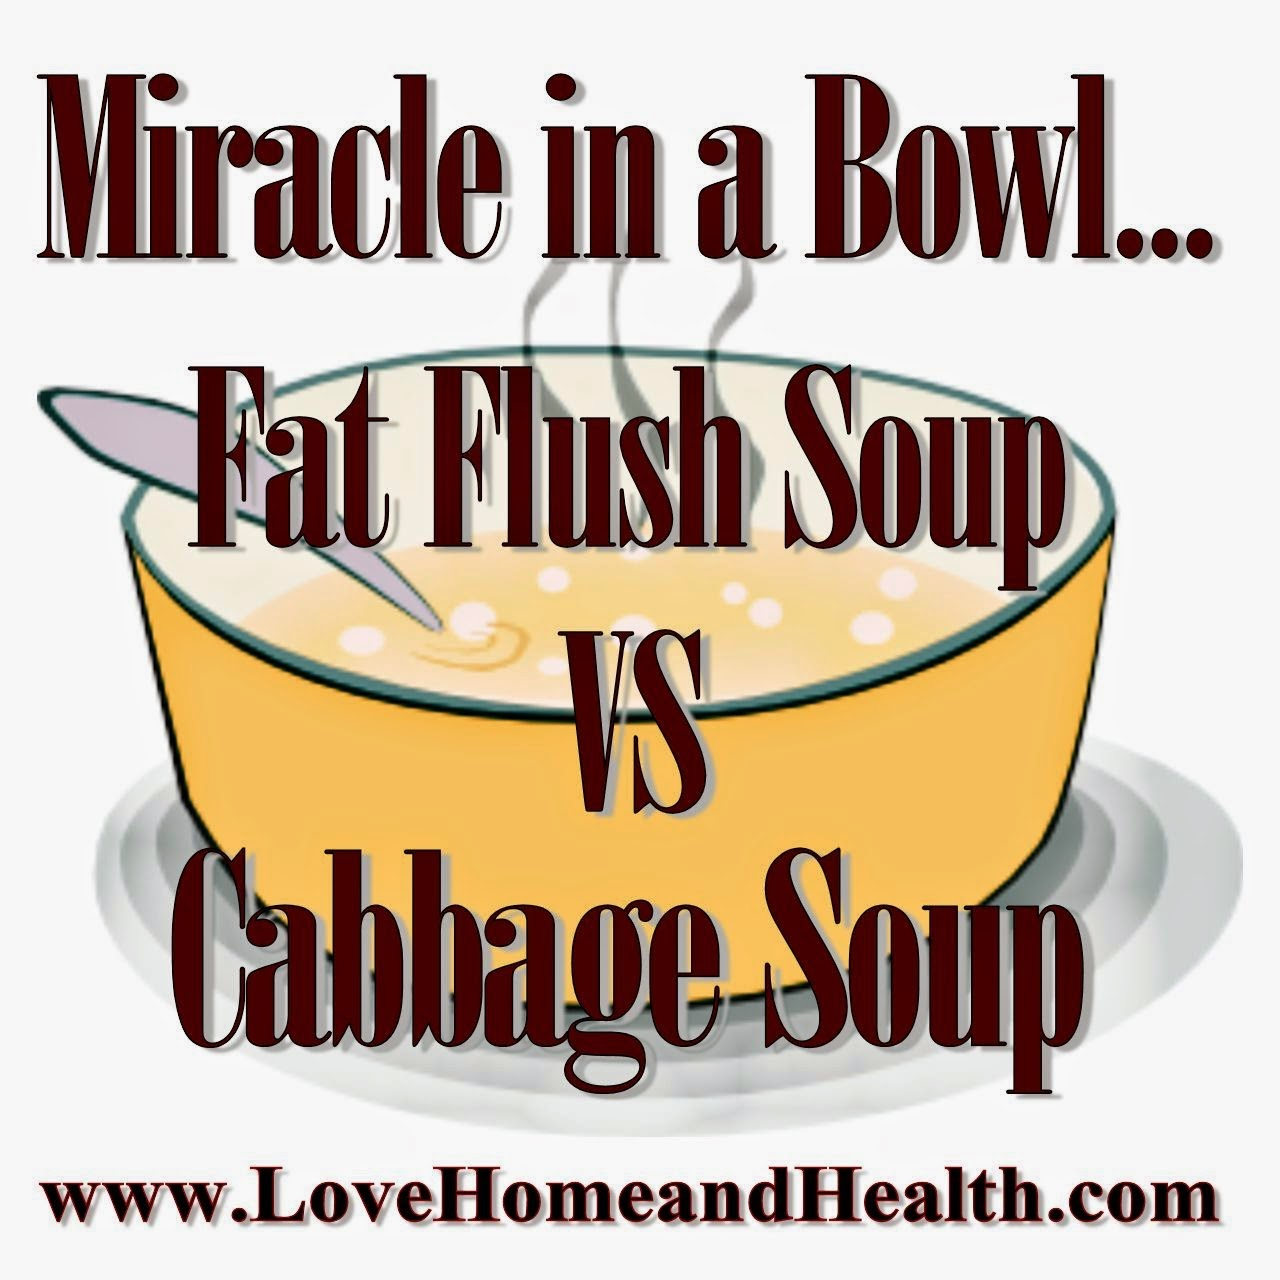 Miracle in a Bowl ... Fat Flush Soup vs. Cabbage Soup